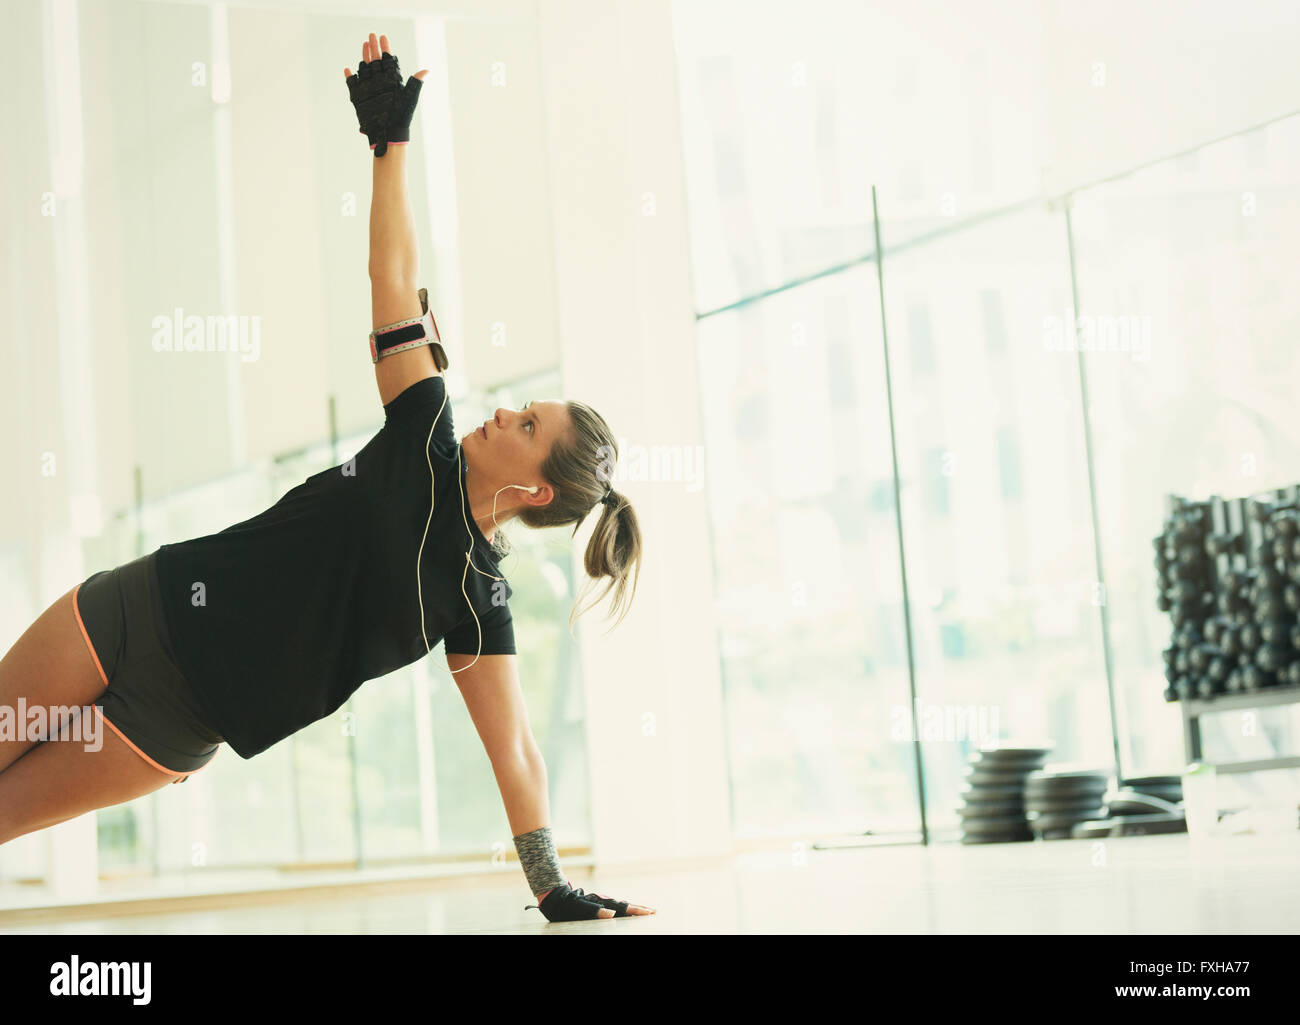 Woman balancing in side plank in gym studio - Stock Image